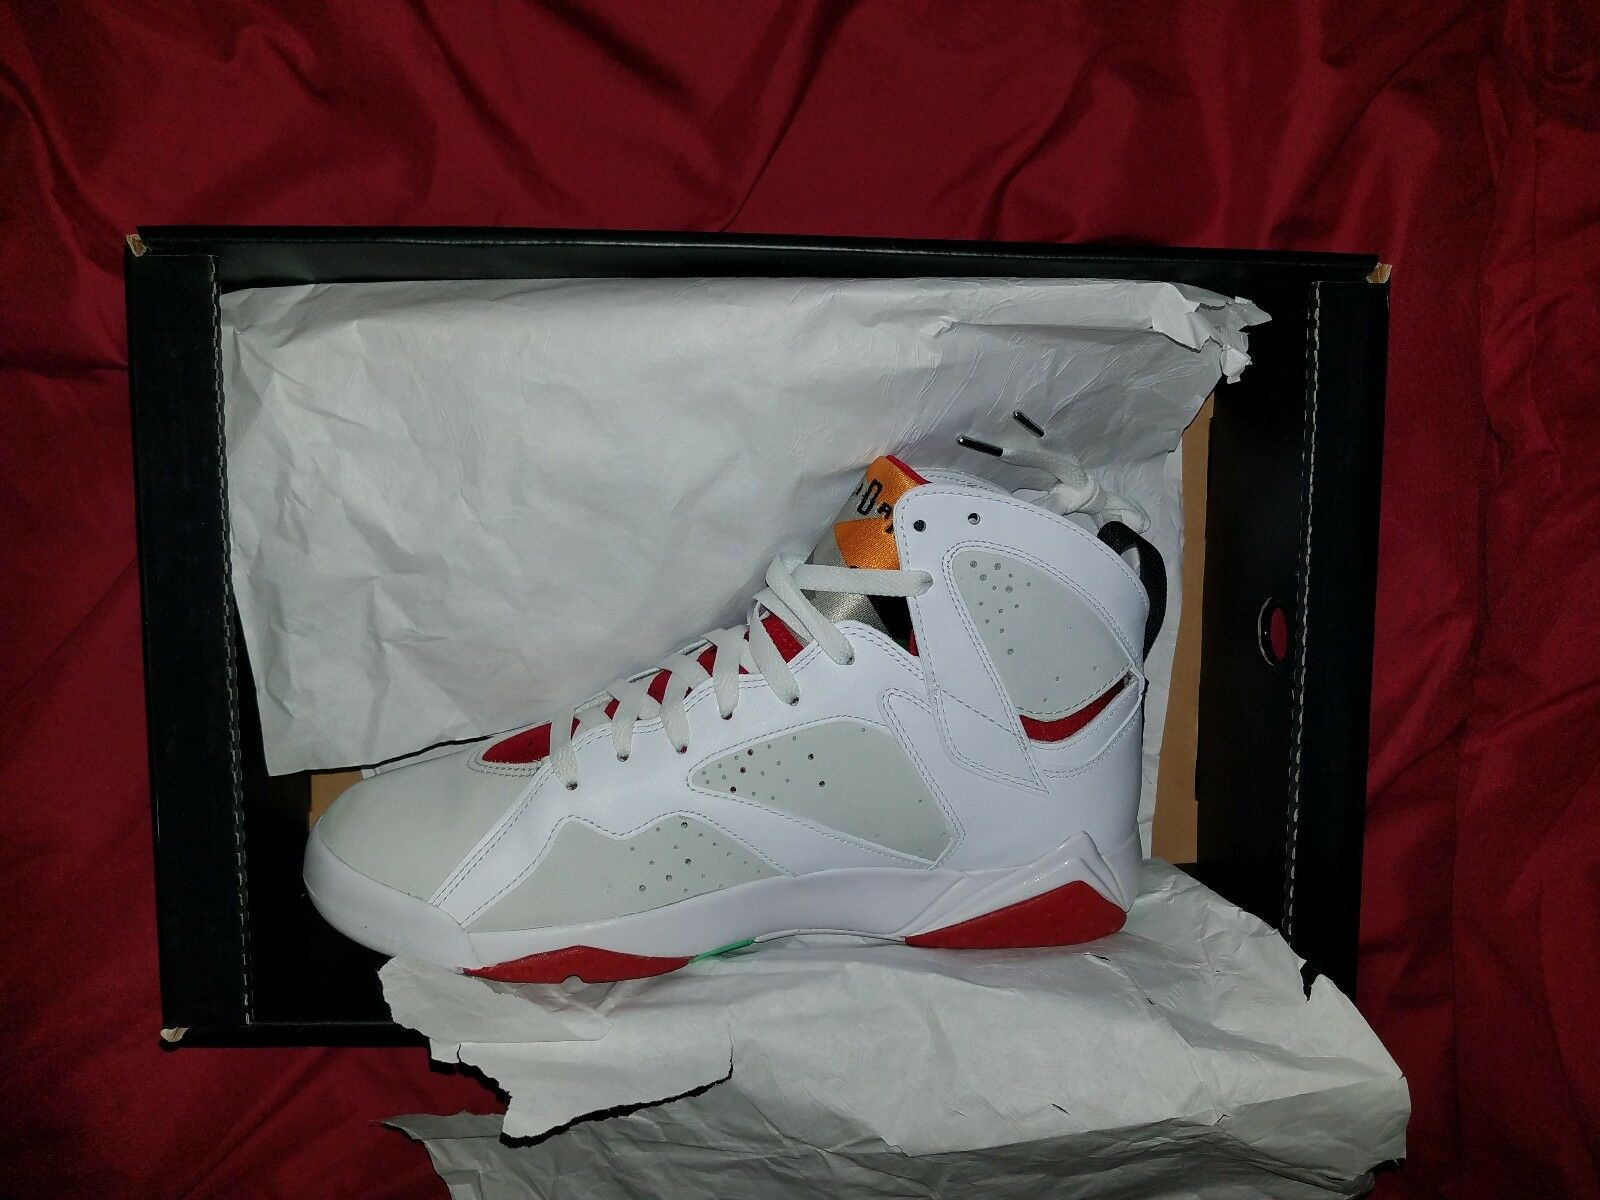 Nike Air Jordan VII Sz 10.5  7 Carmine Hare Count Down Pack Price reduction Cheap and beautiful fashion